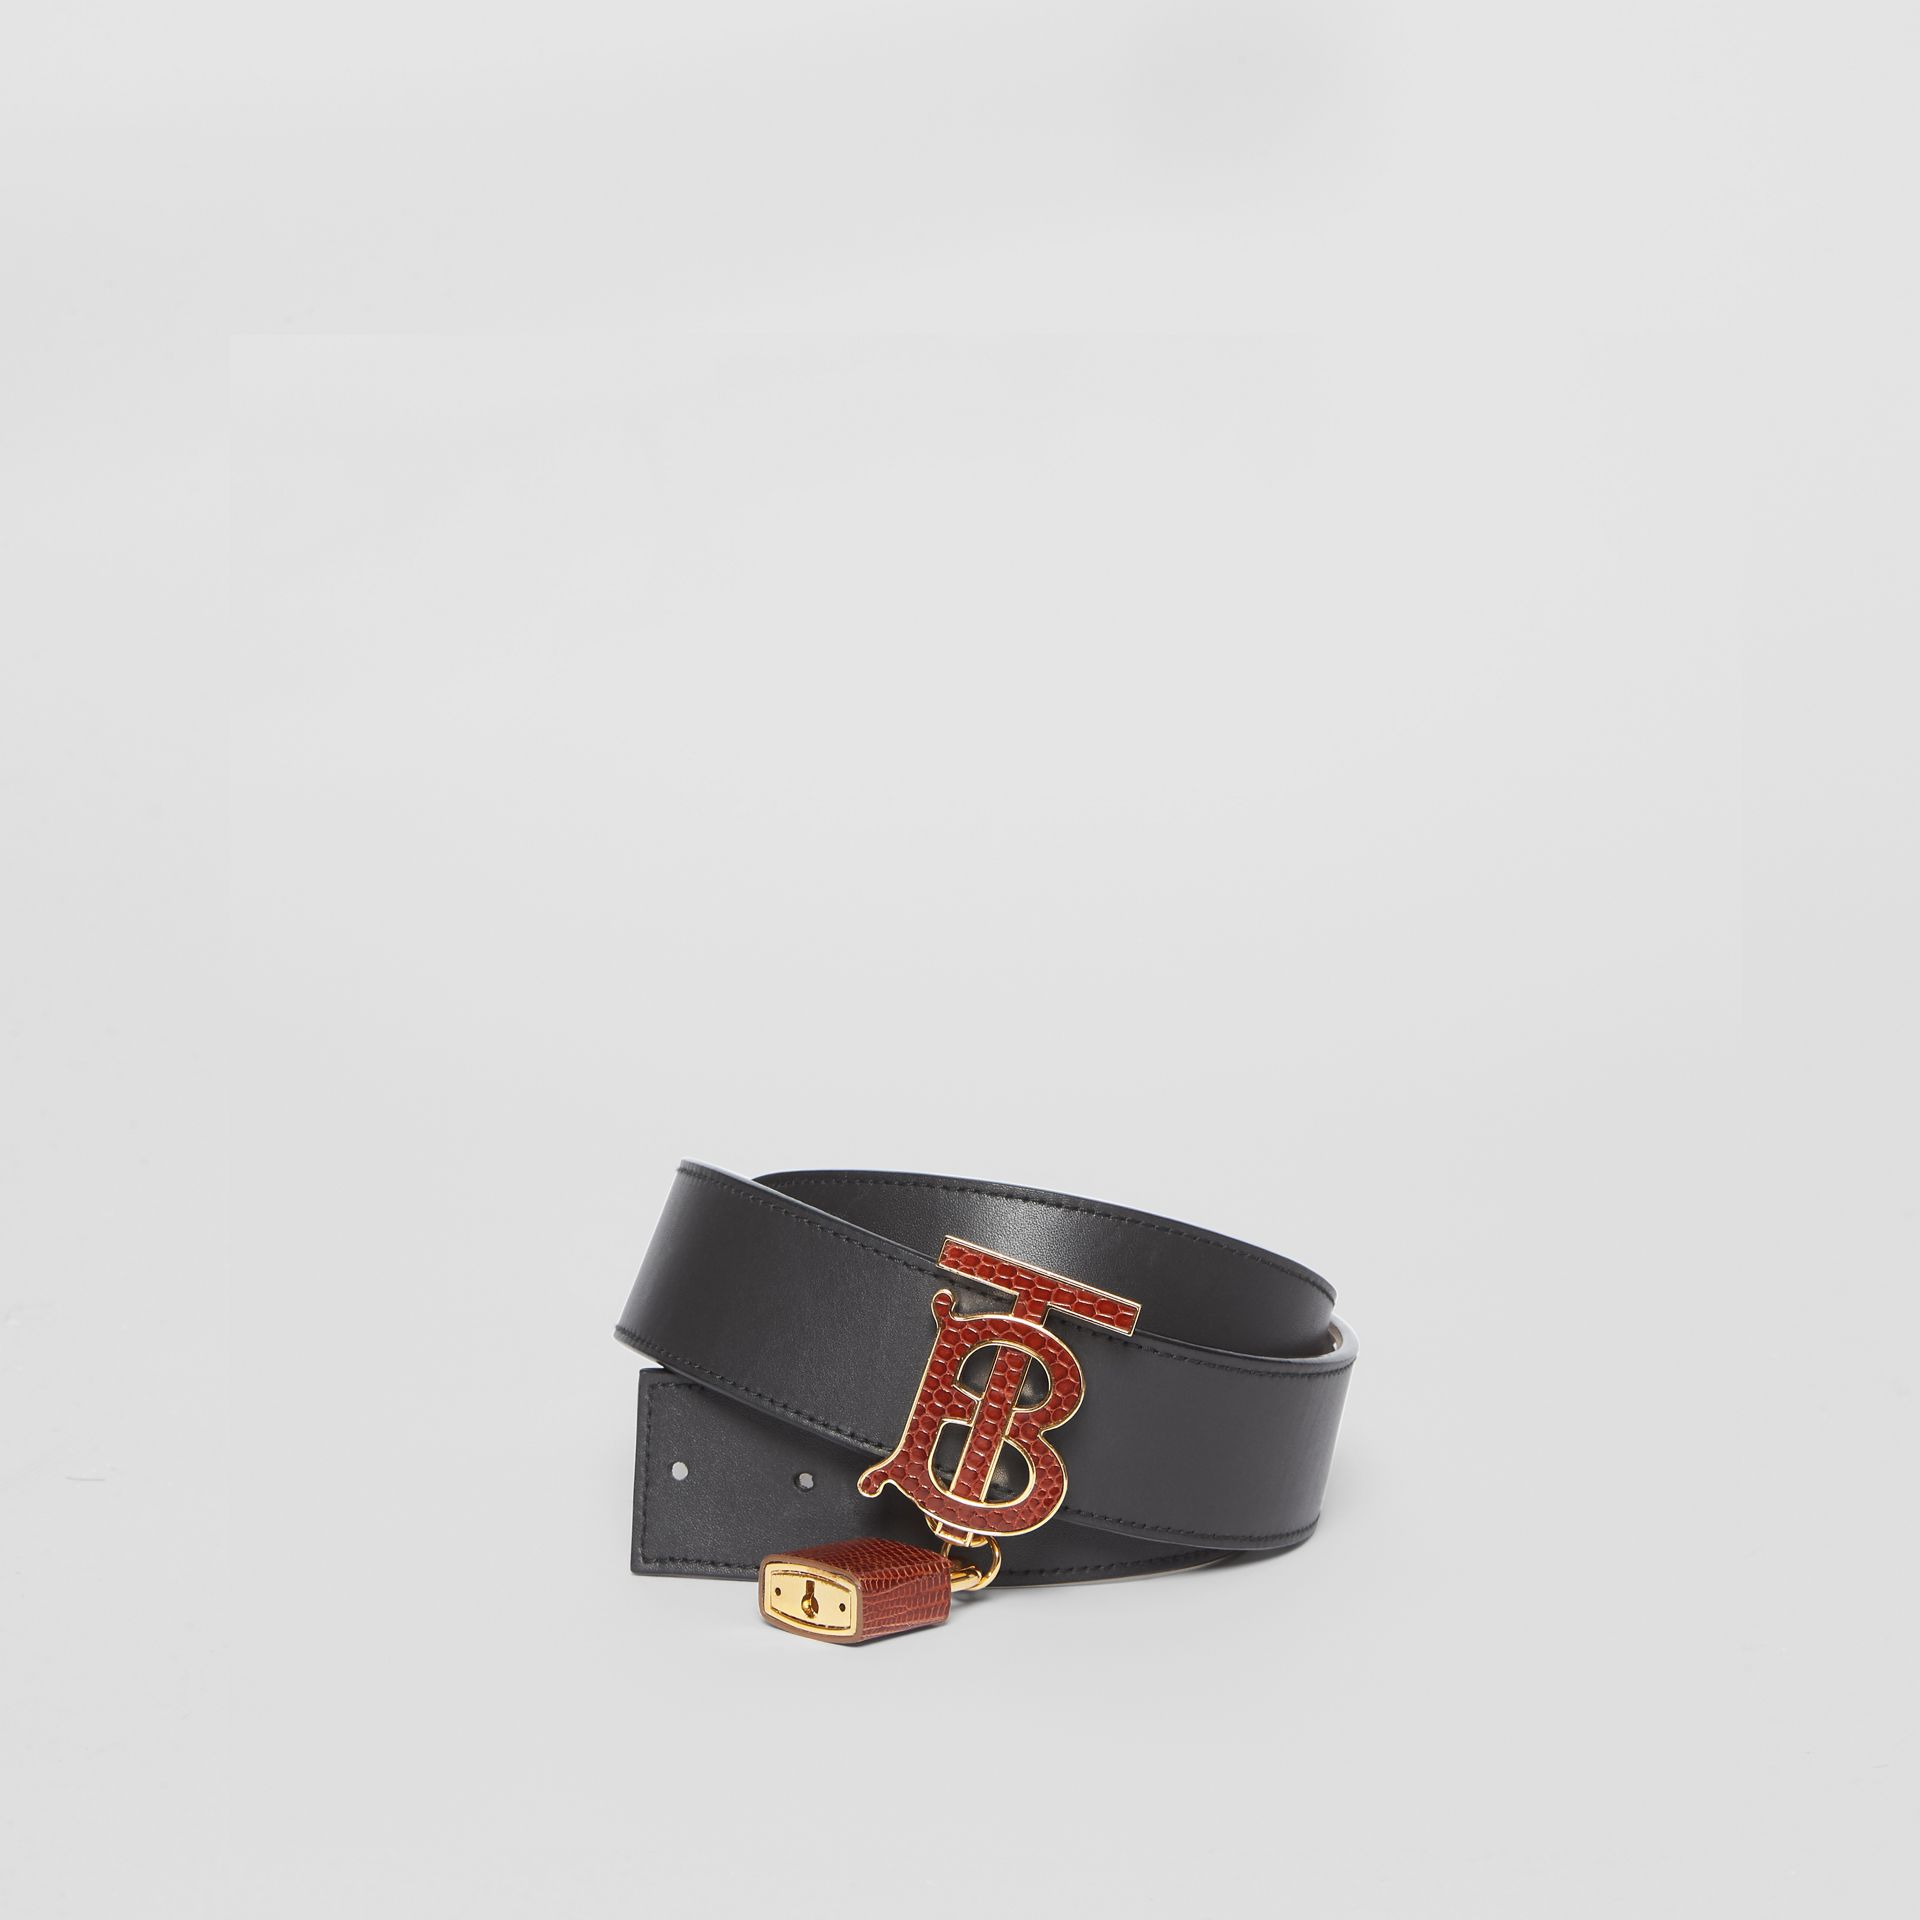 Padlock Detail Monogram Motif Leather Belt in Black/tan - Women | Burberry Australia - gallery image 0